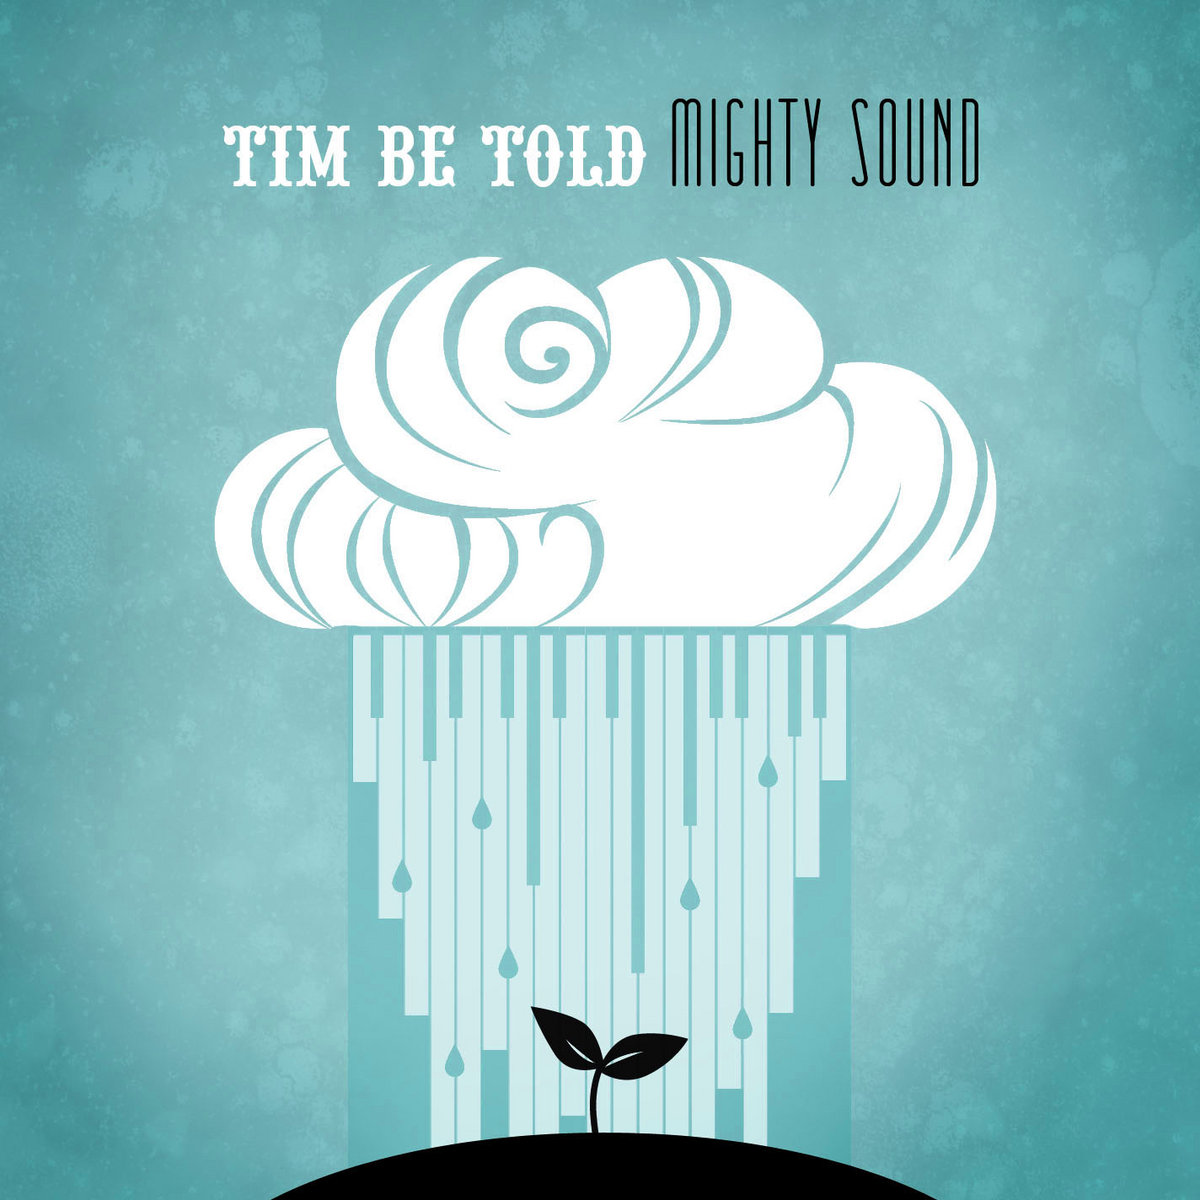 from Mighty Sound by Tim Be Told & Lock The Door | Tim Be Told